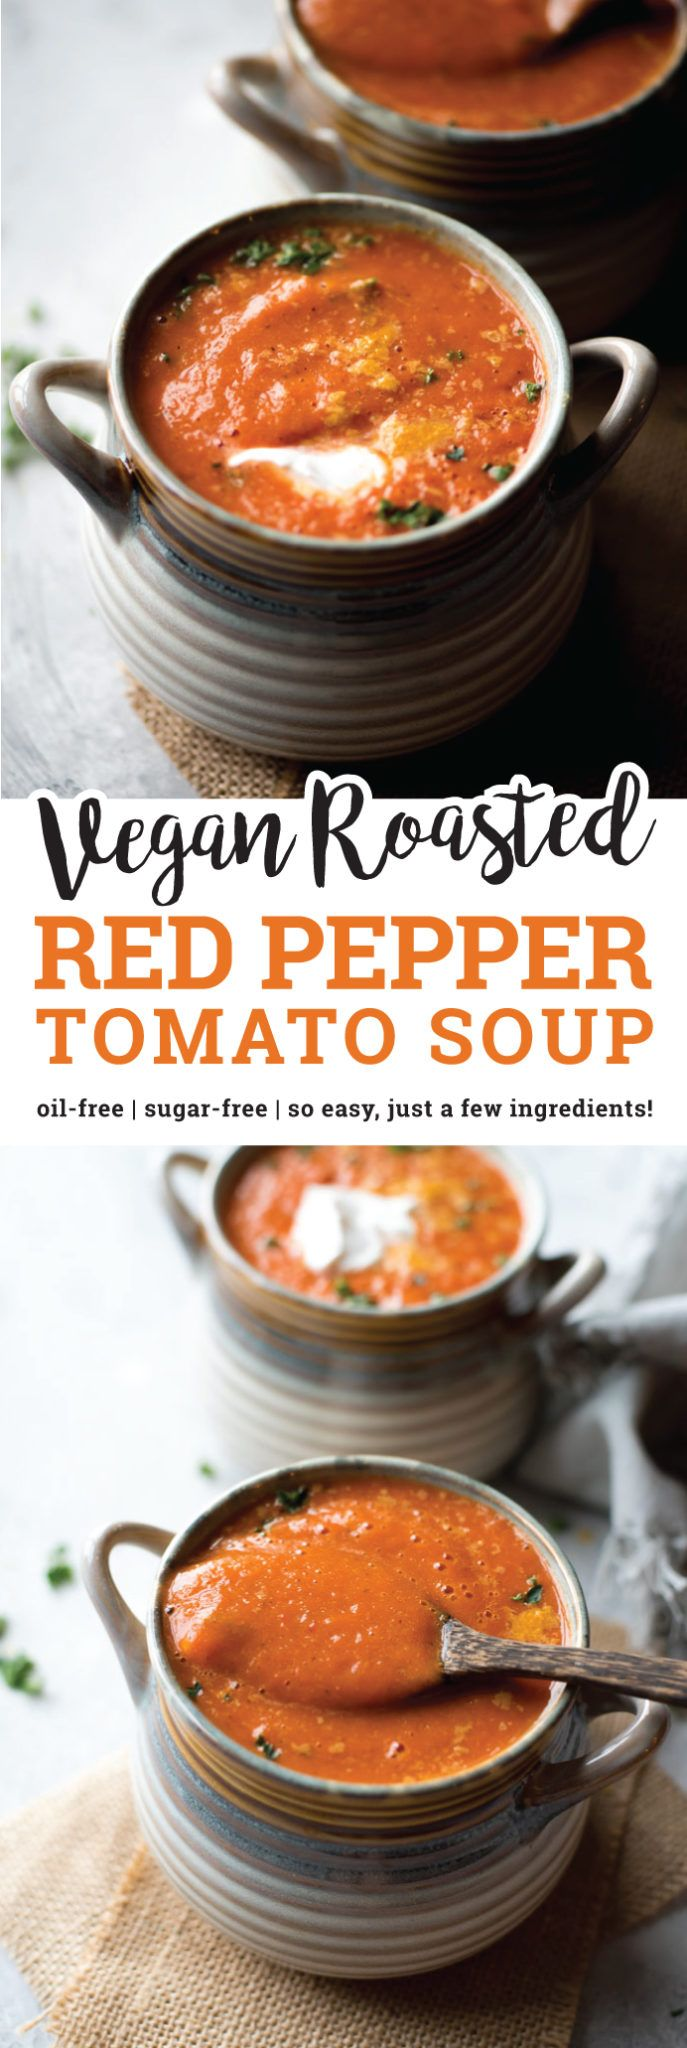 After roasting the red peppers, this vegan Roasted Red Pepper Tomato Soup comes together in minutes in the blender. No need to cook it in a pot! It's loaded with flavour, high in protein and fibre, virtually fat-free and a good source of vitamins and minerals. via @runonrealfood